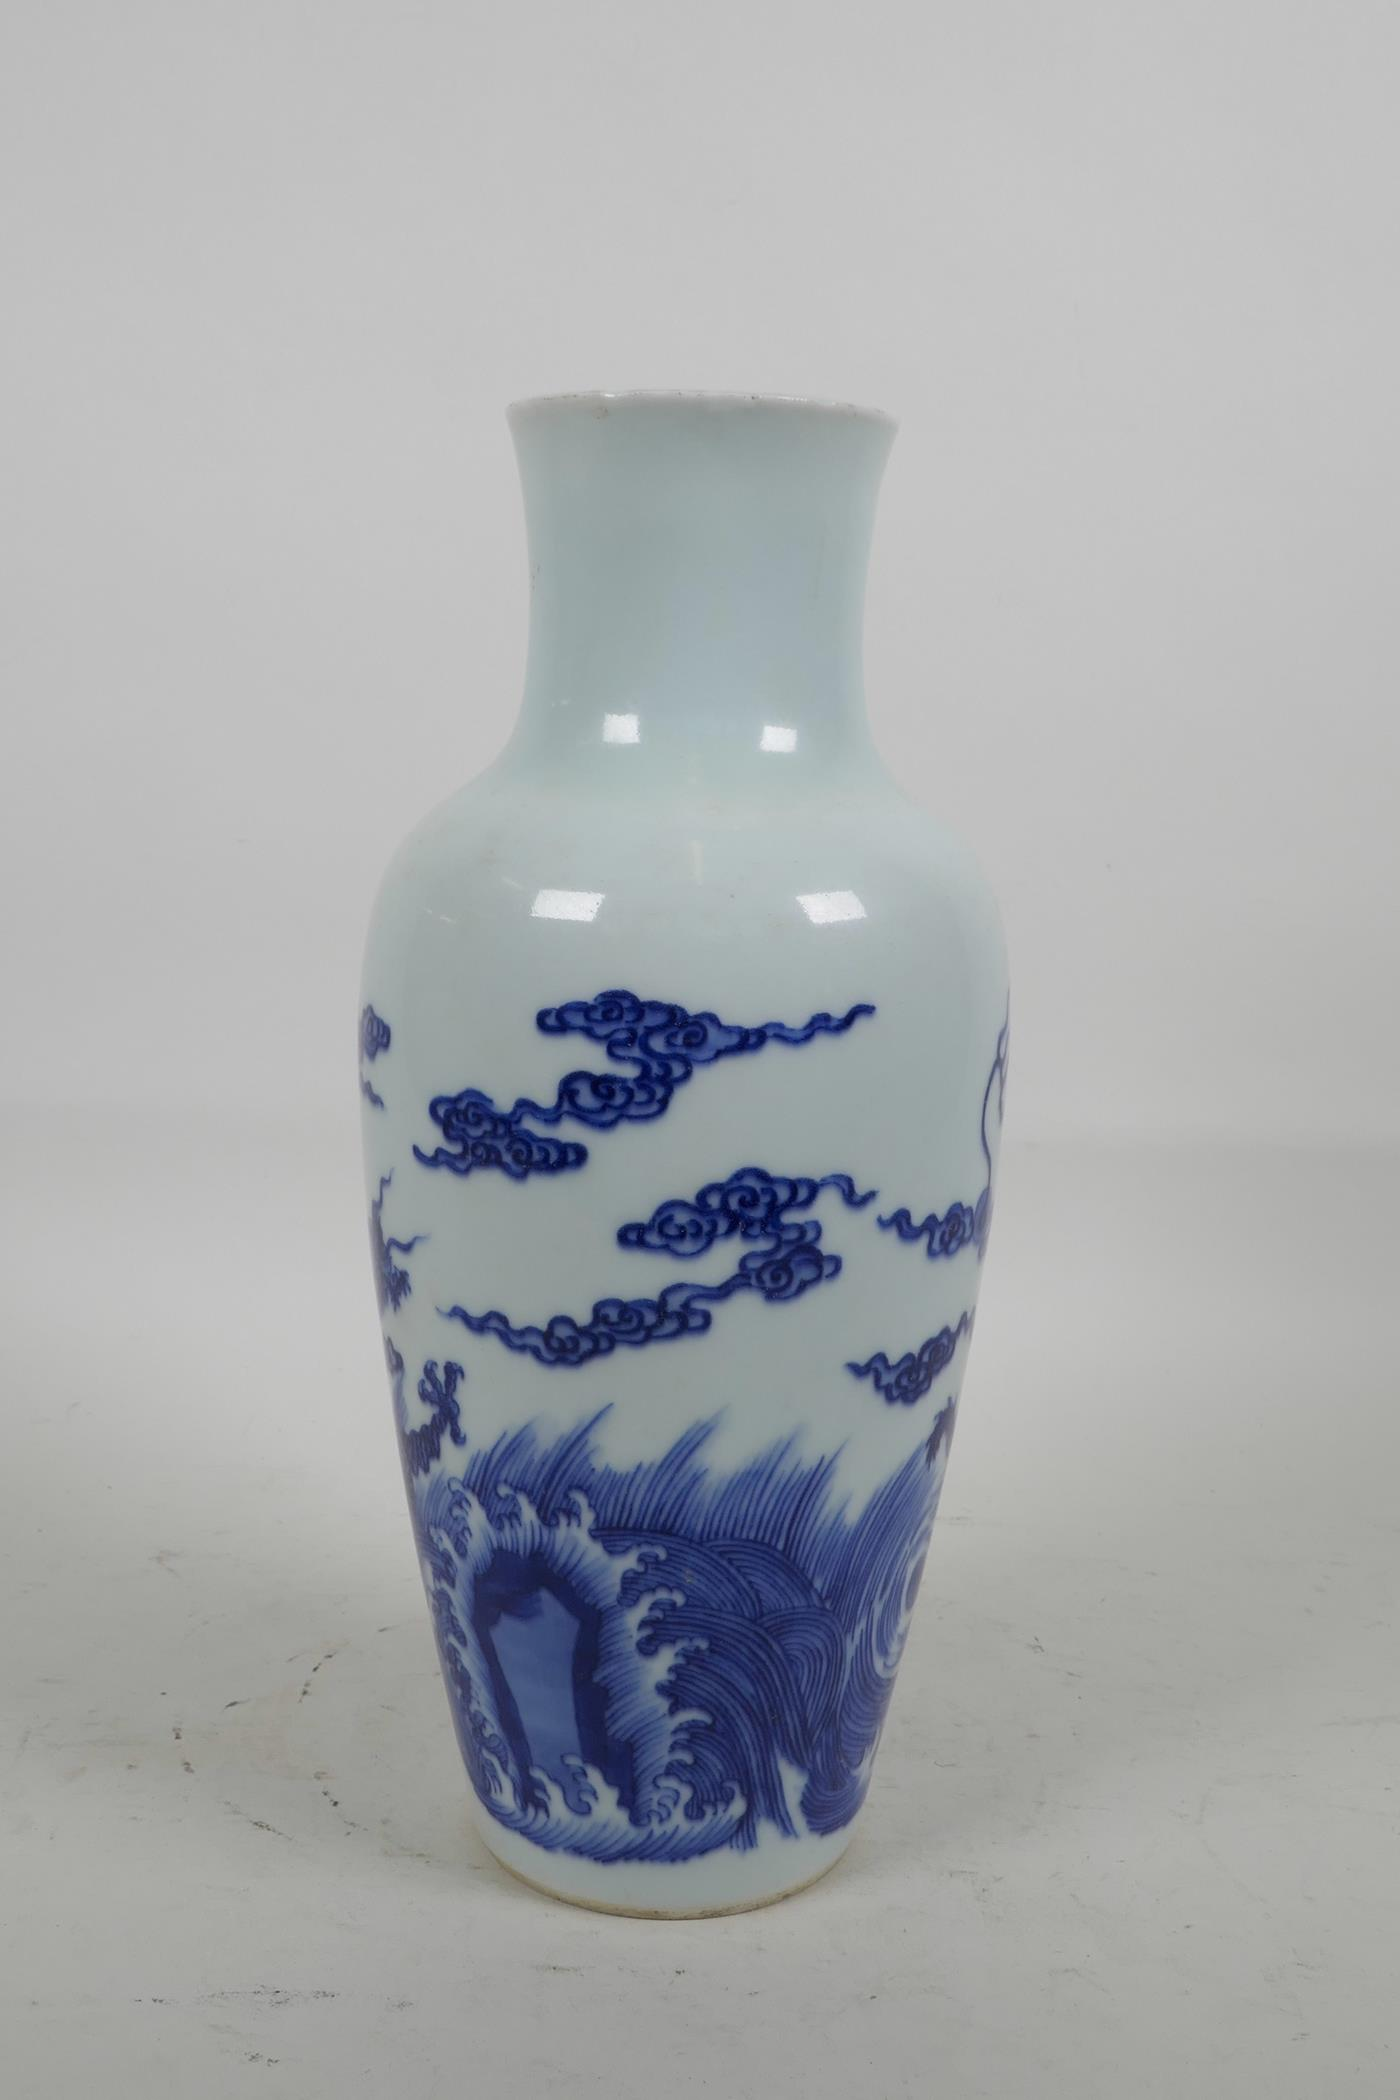 Lot 16 - A Chinese blue and white porcelain vase decorated with dragons and clouds, six character mark to